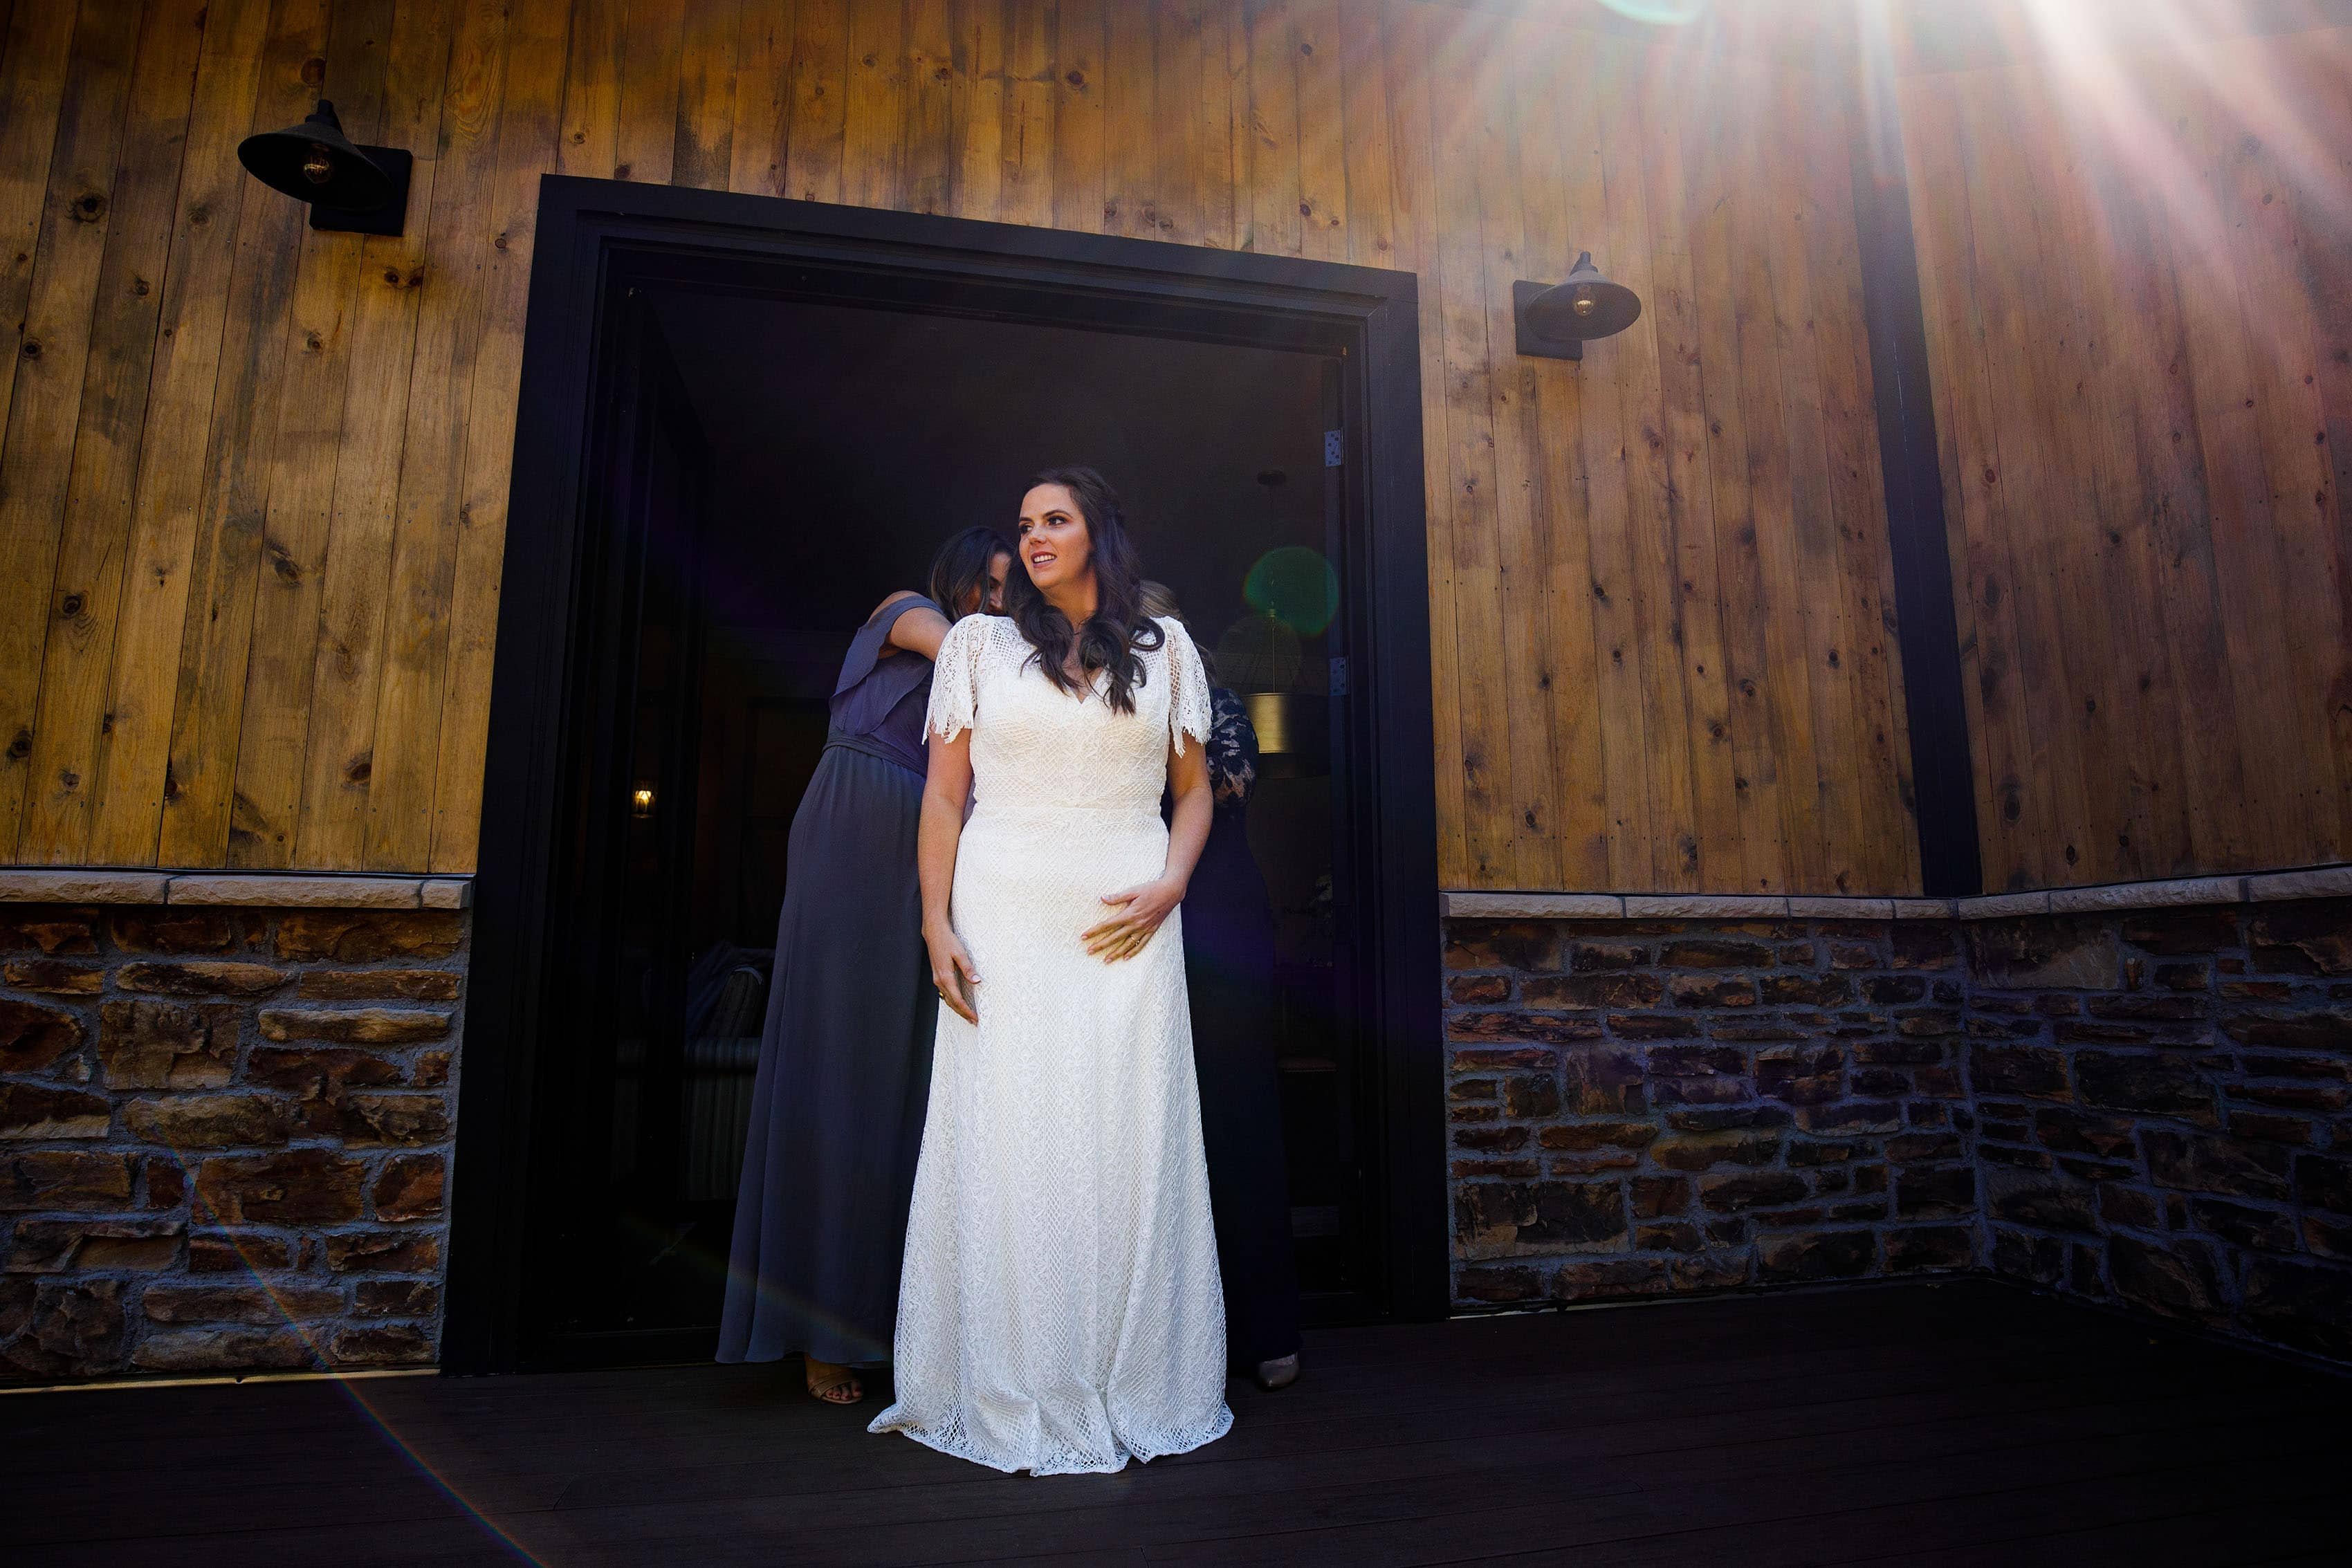 Kate puts on her wedding dress in the bridal suite at Blackstone Rivers Ranch